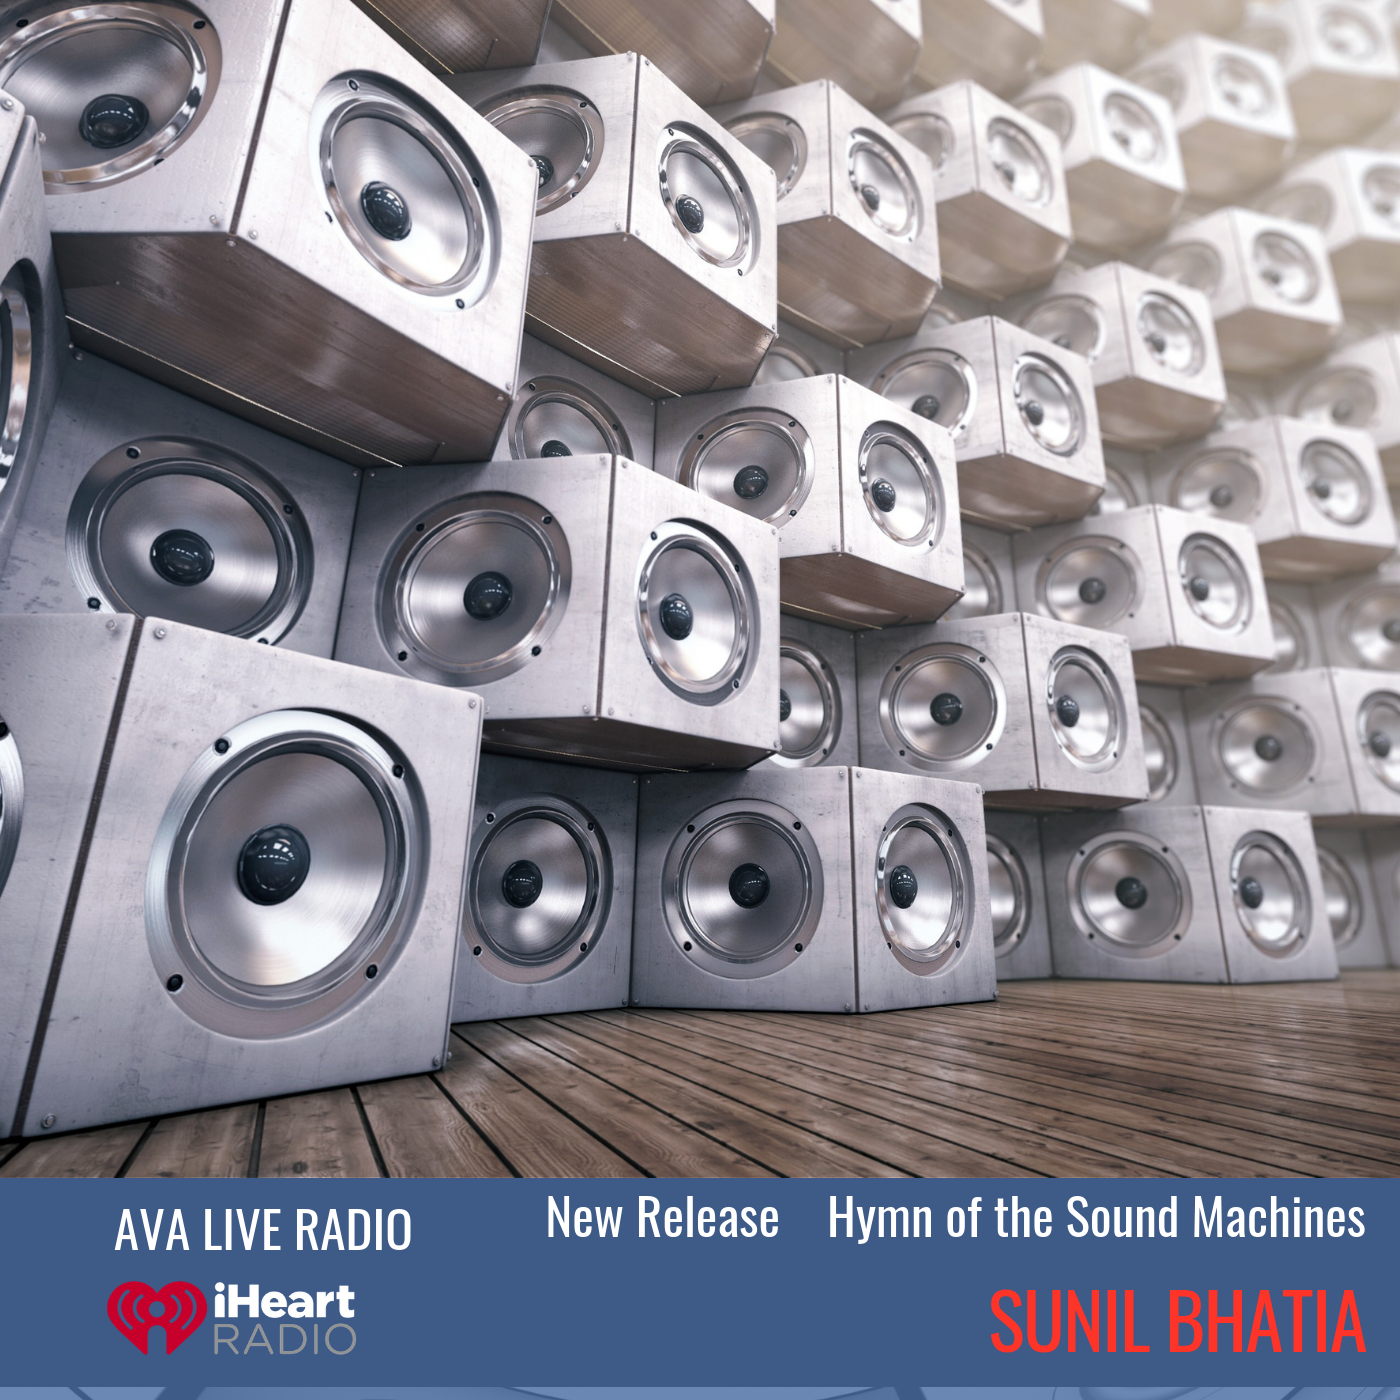 Hymn of the Sound Machines sunil bhatia.png